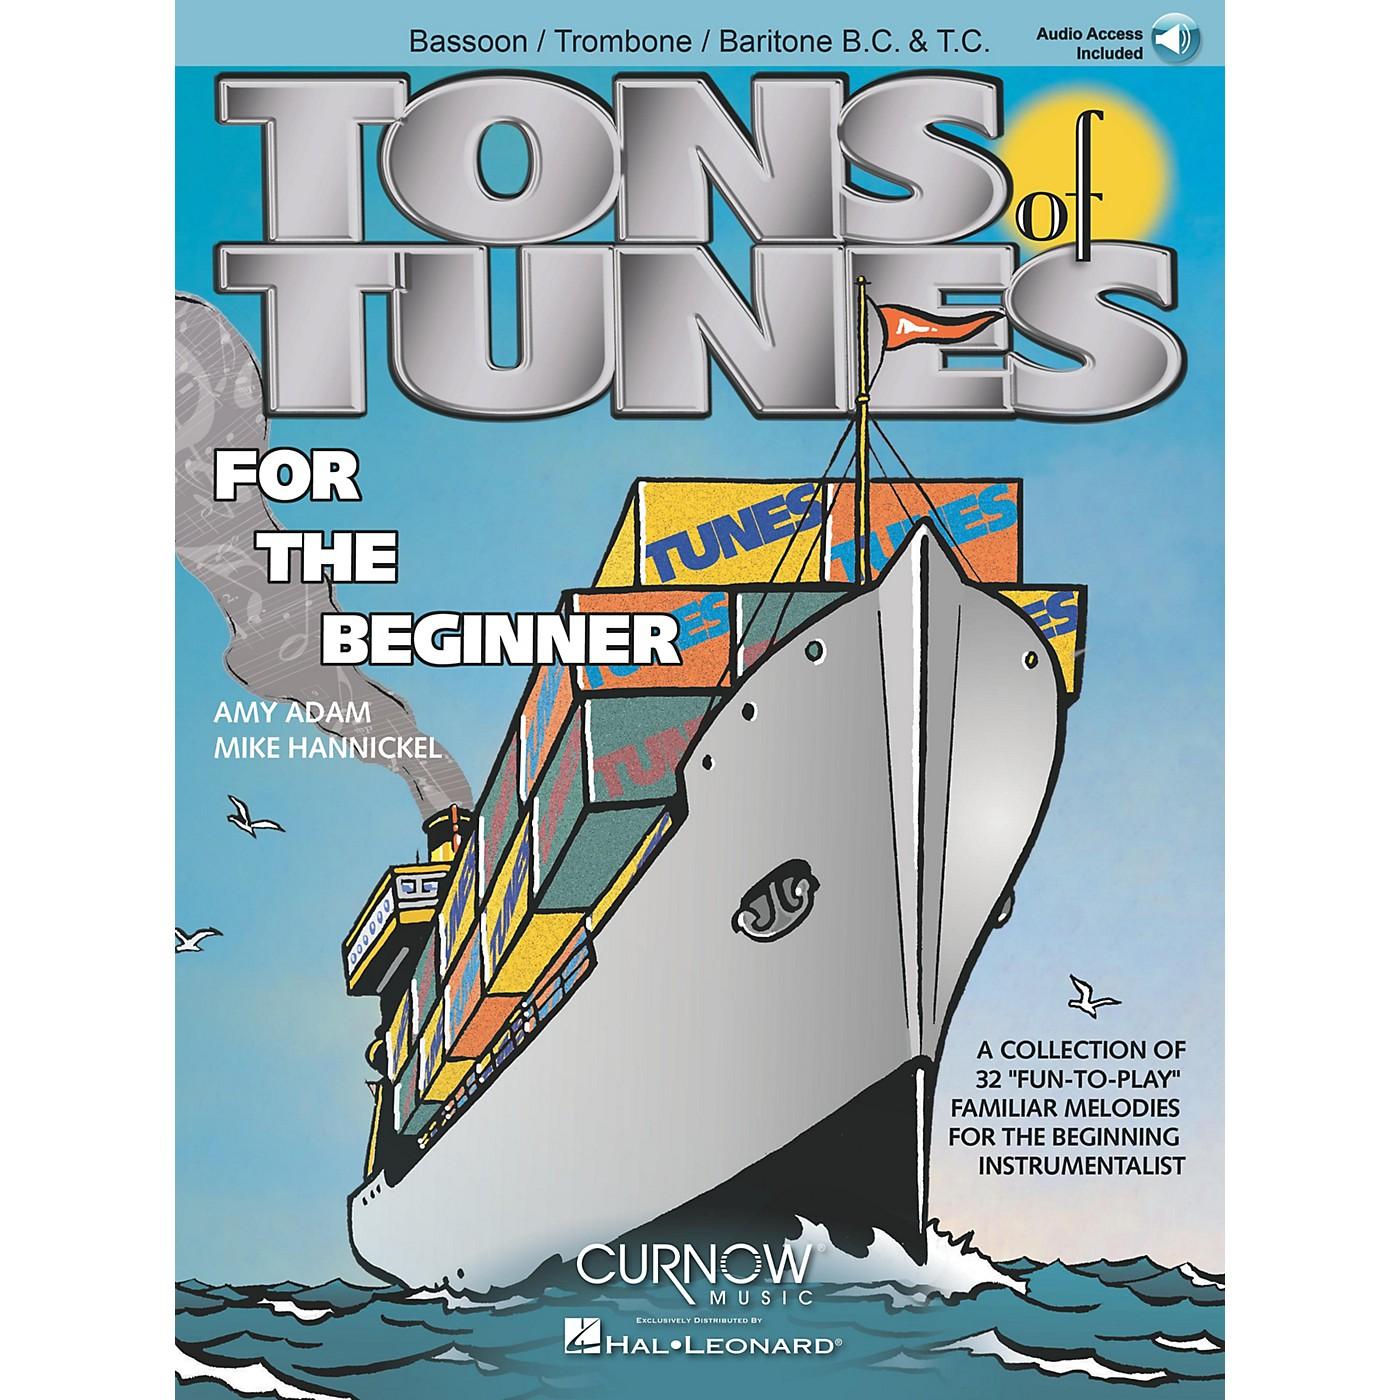 Curnow Music Tons of Tunes for the Beginner Concert Band Level .5 to 1 thumbnail